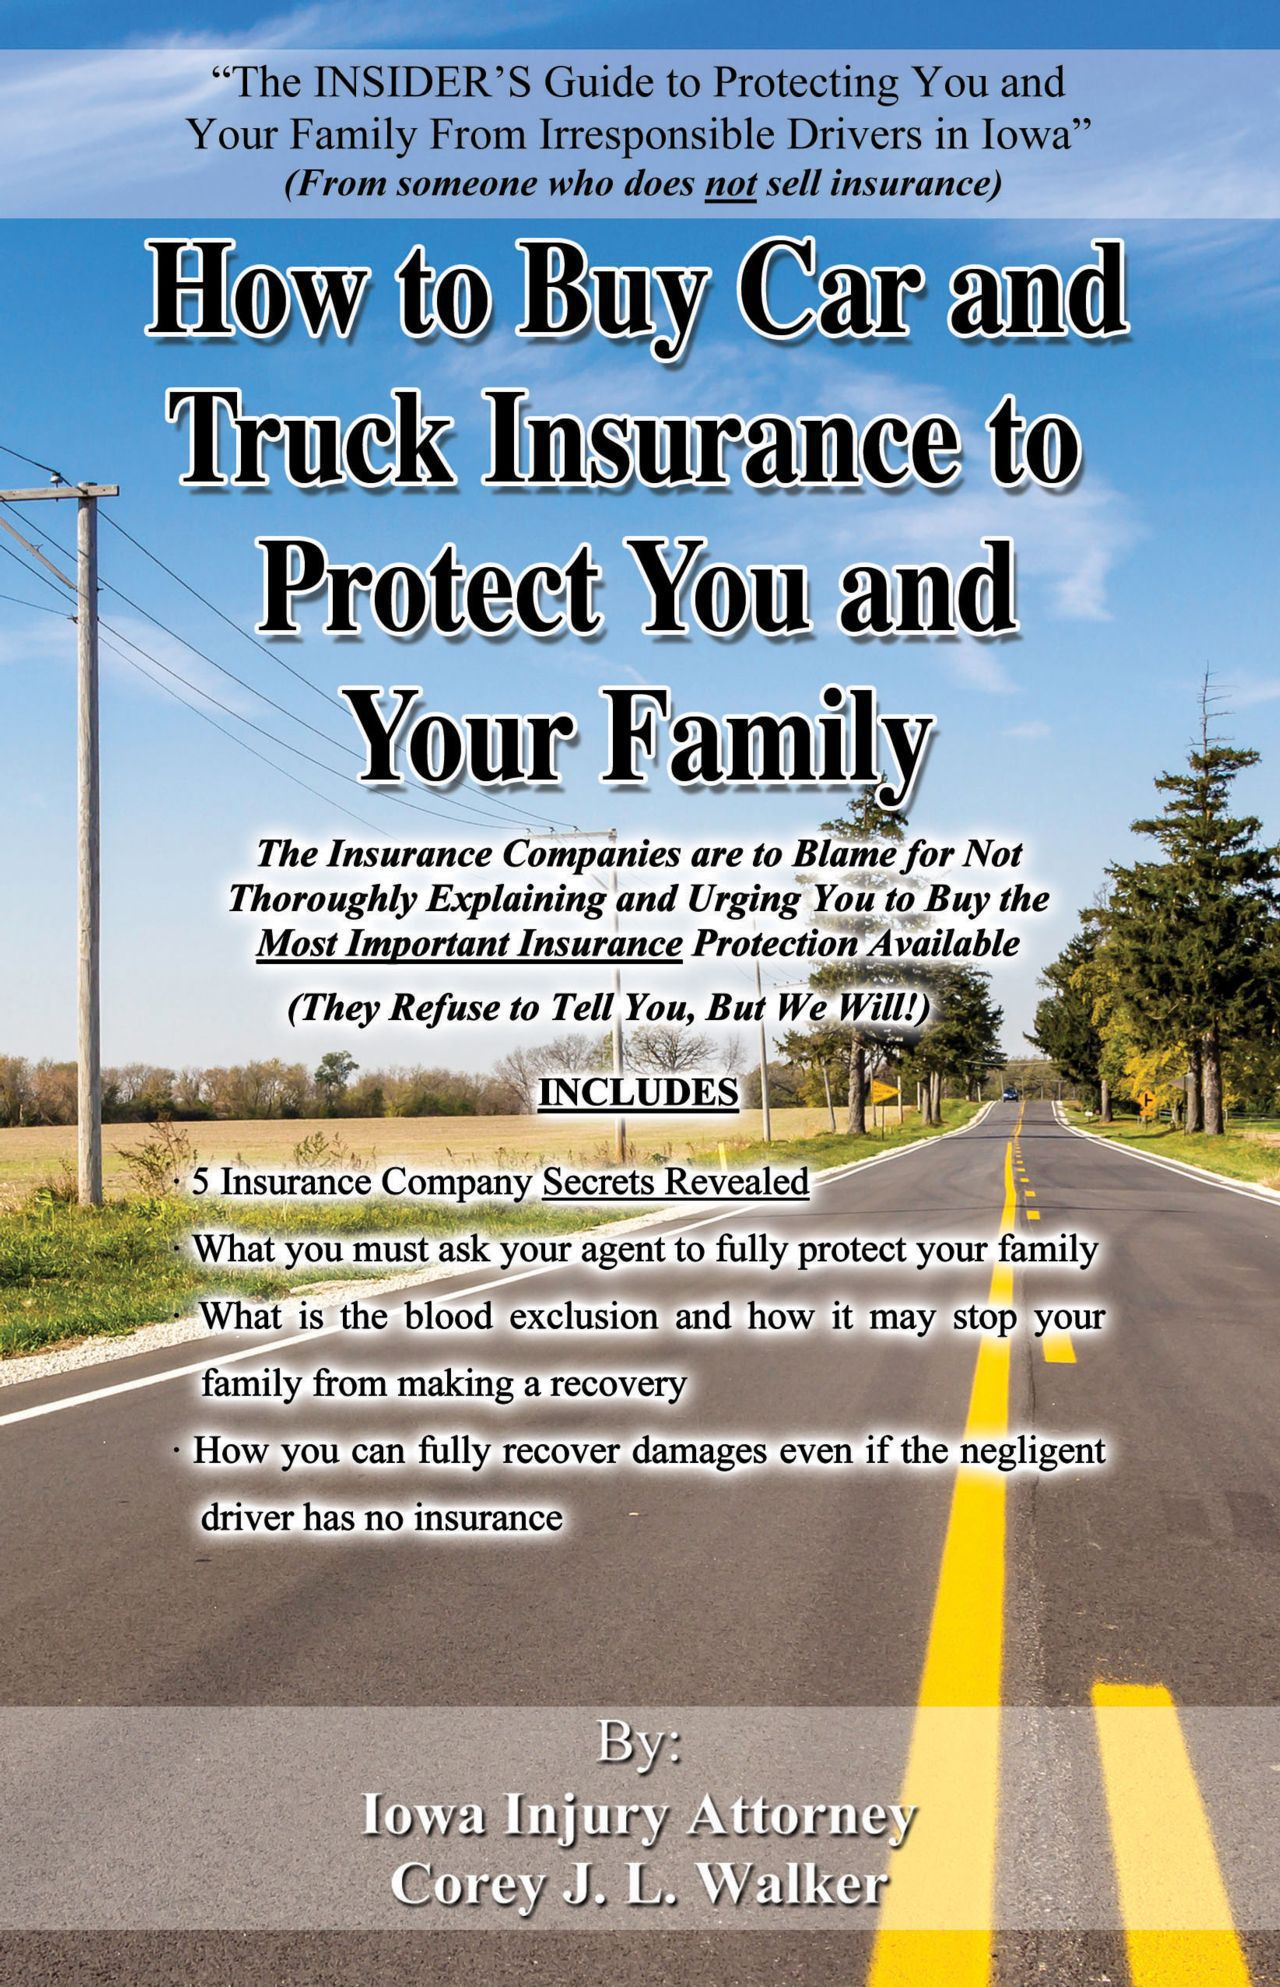 How to buy car and truck insurance book by Iowa injury attourney